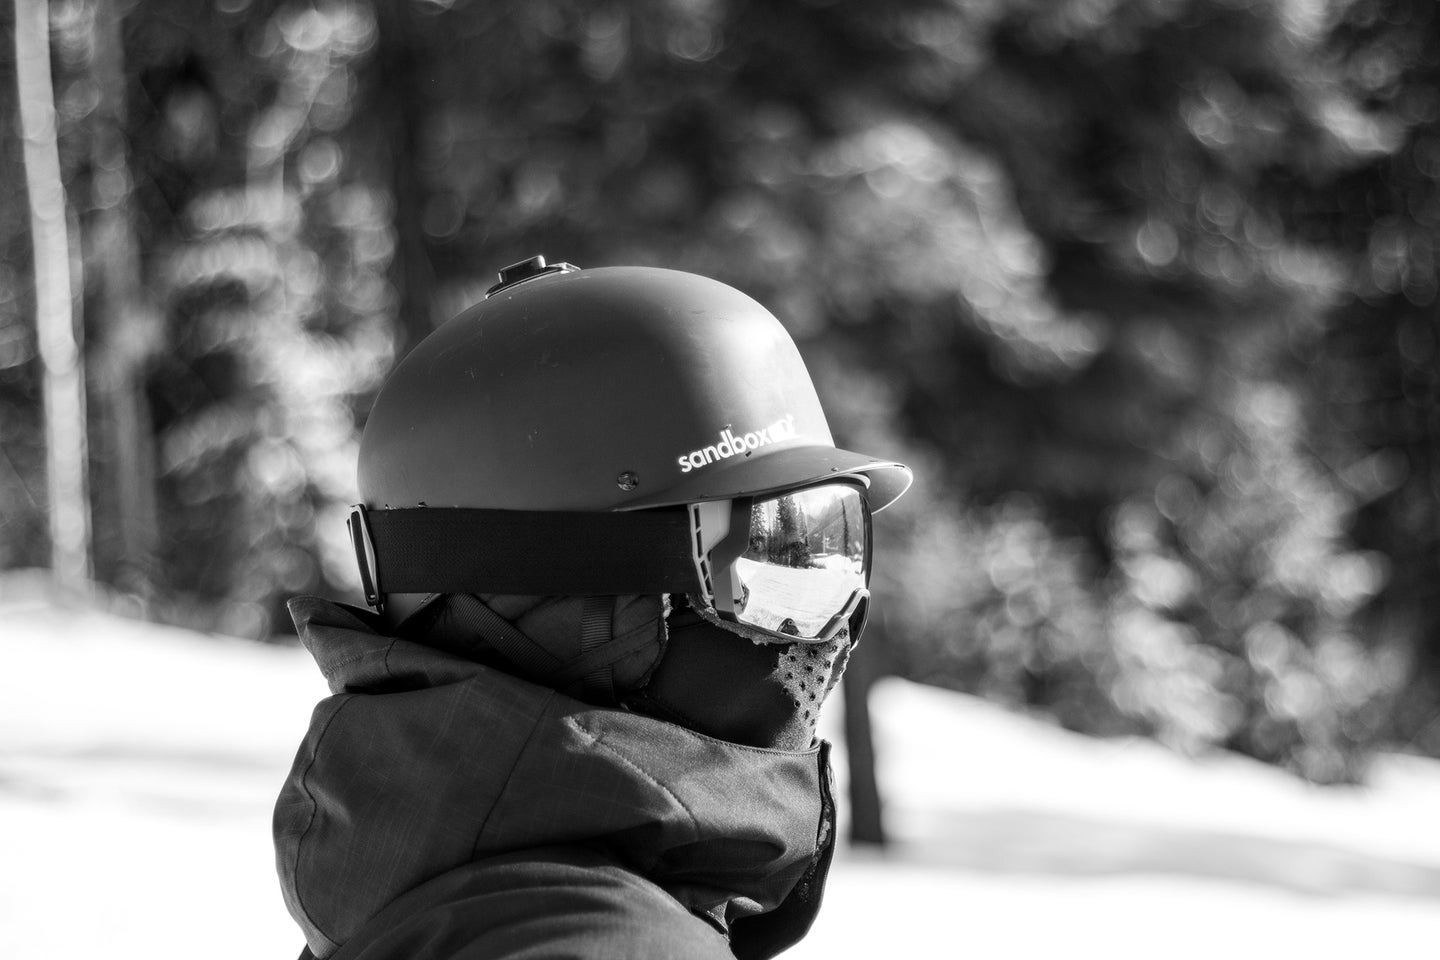 person with a helmet, ski goggles, the best ski mask, and jacket on a mountain